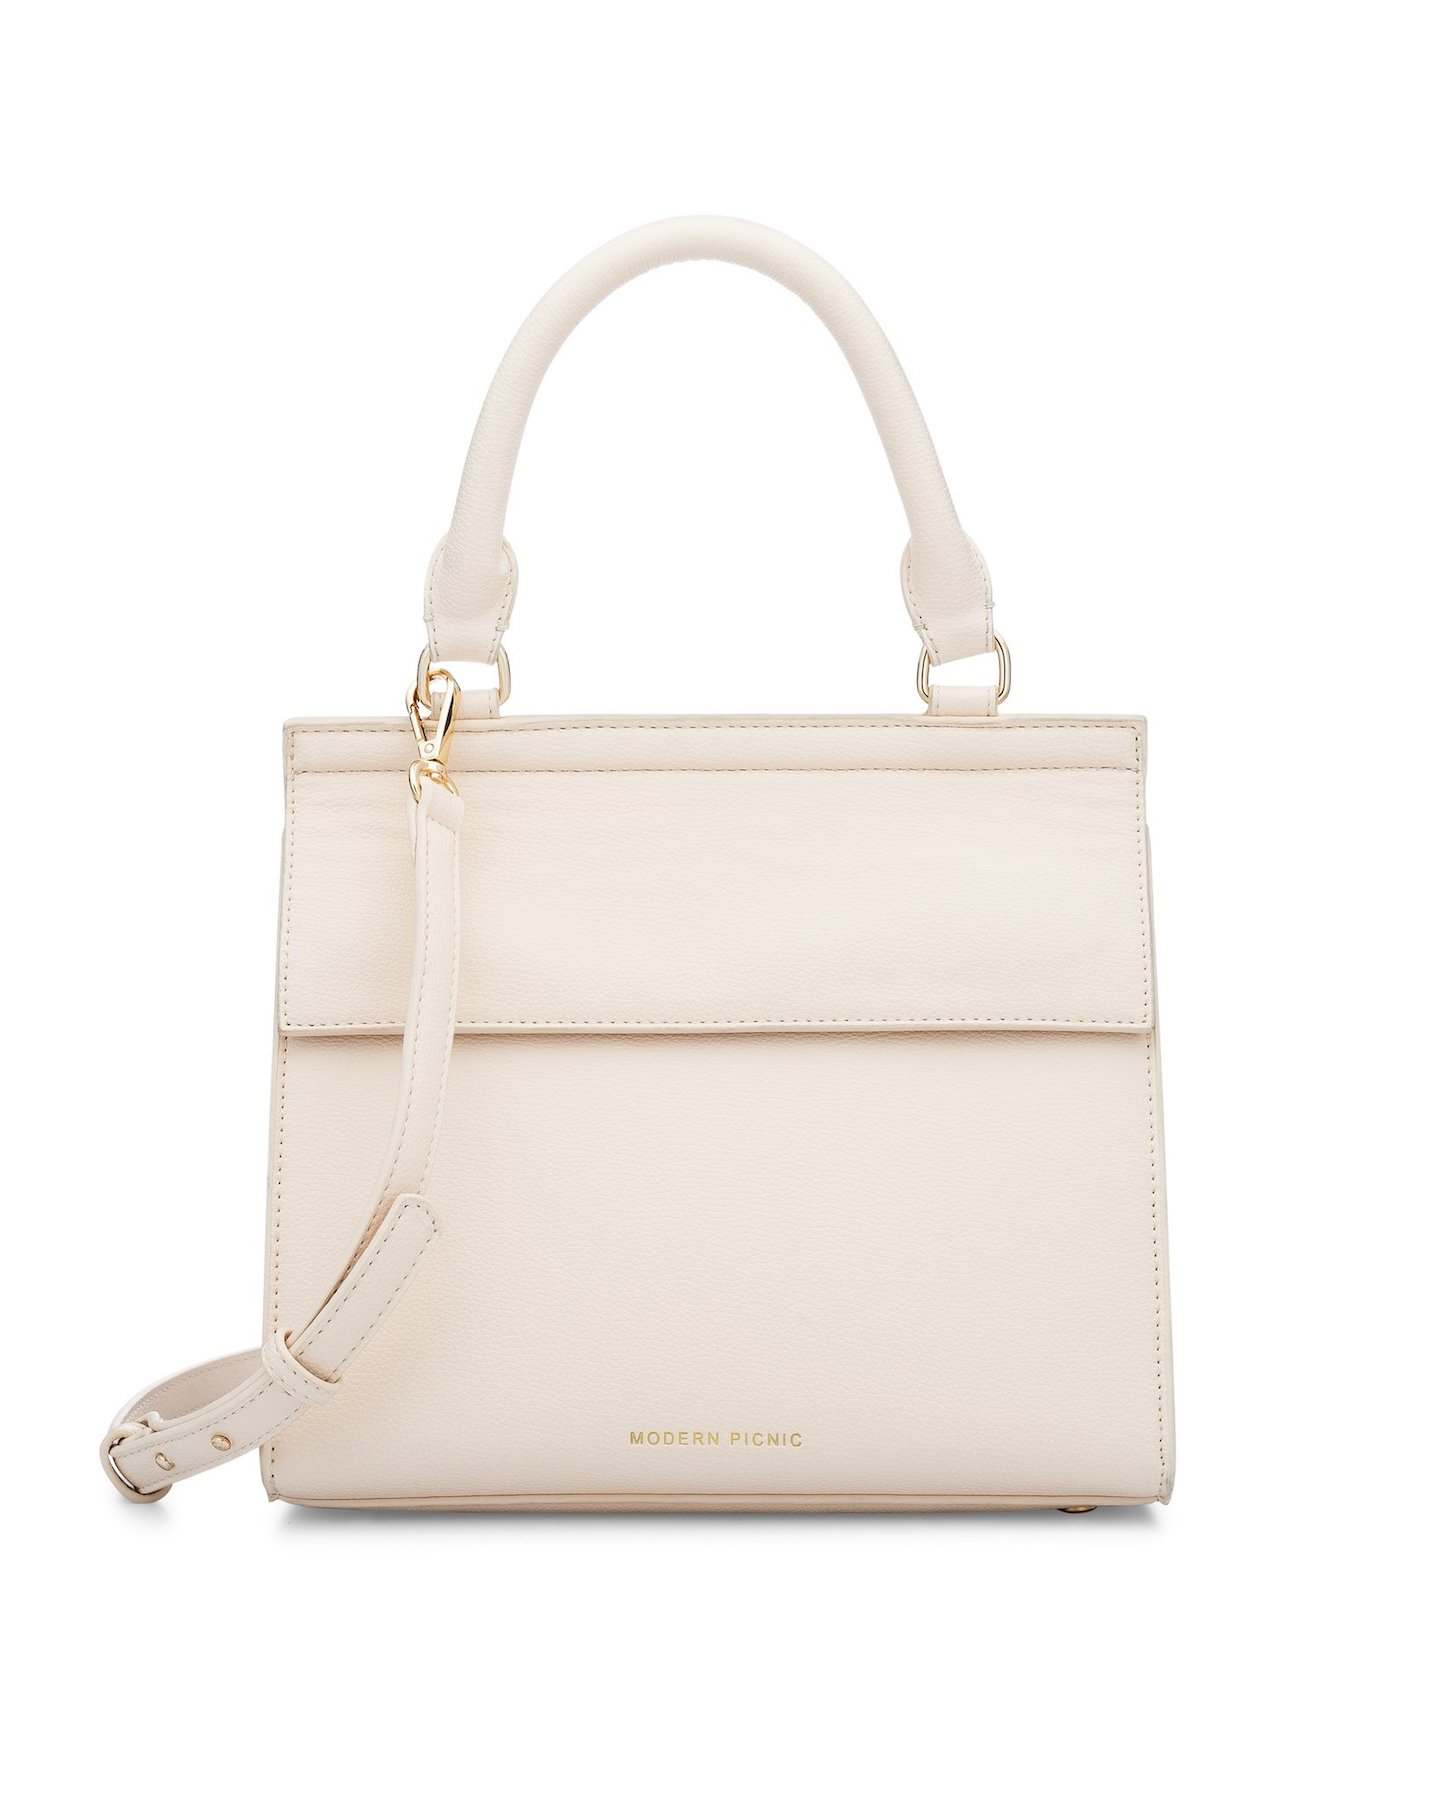 Lunch Bags for Women Modern Picnic